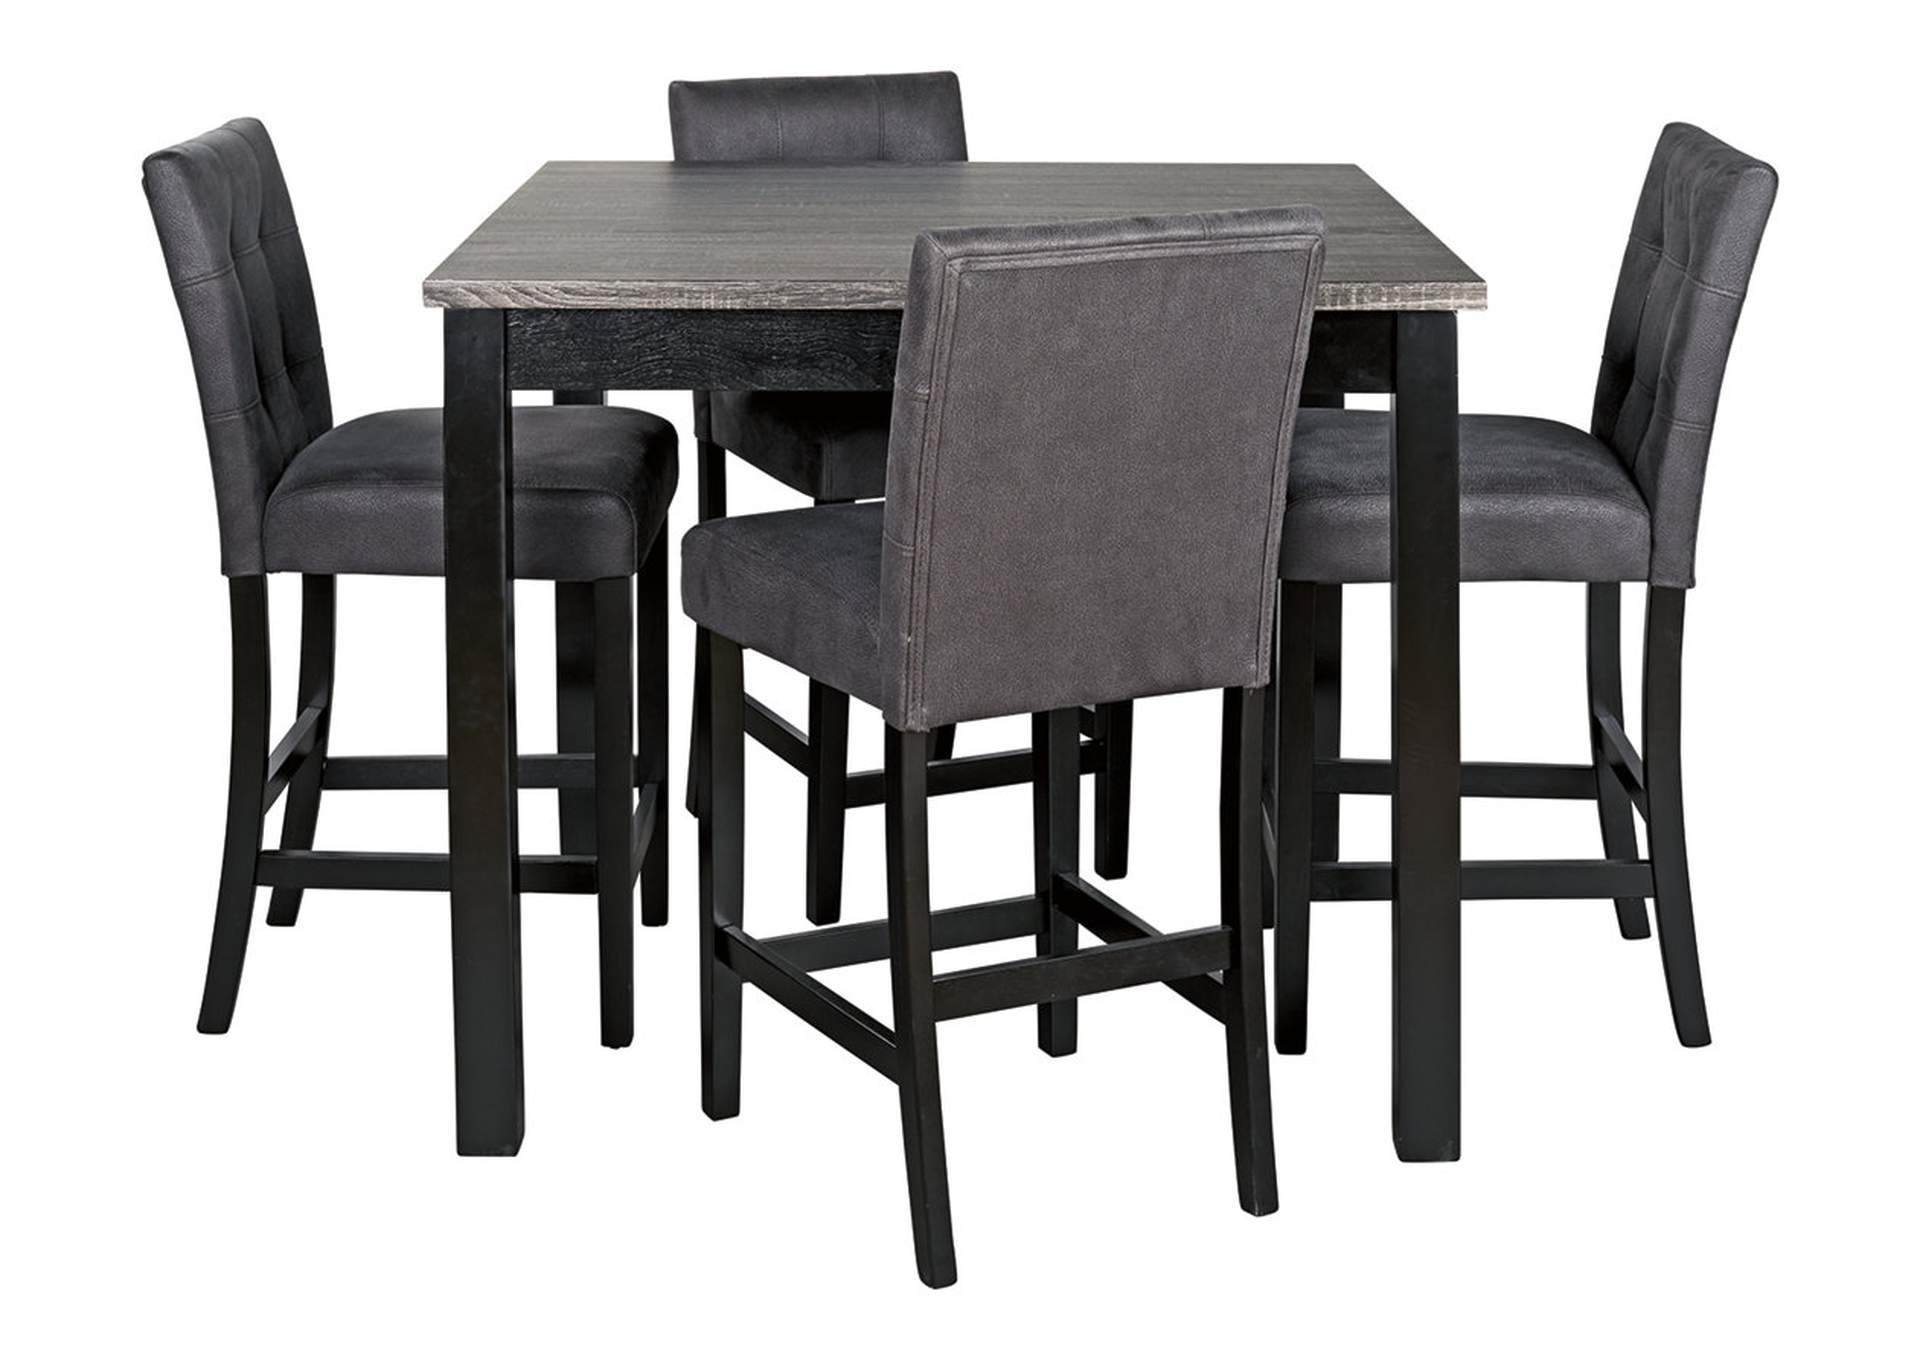 Garvine Counter Height Dining Room Table and Bar Stools (Set of 5)